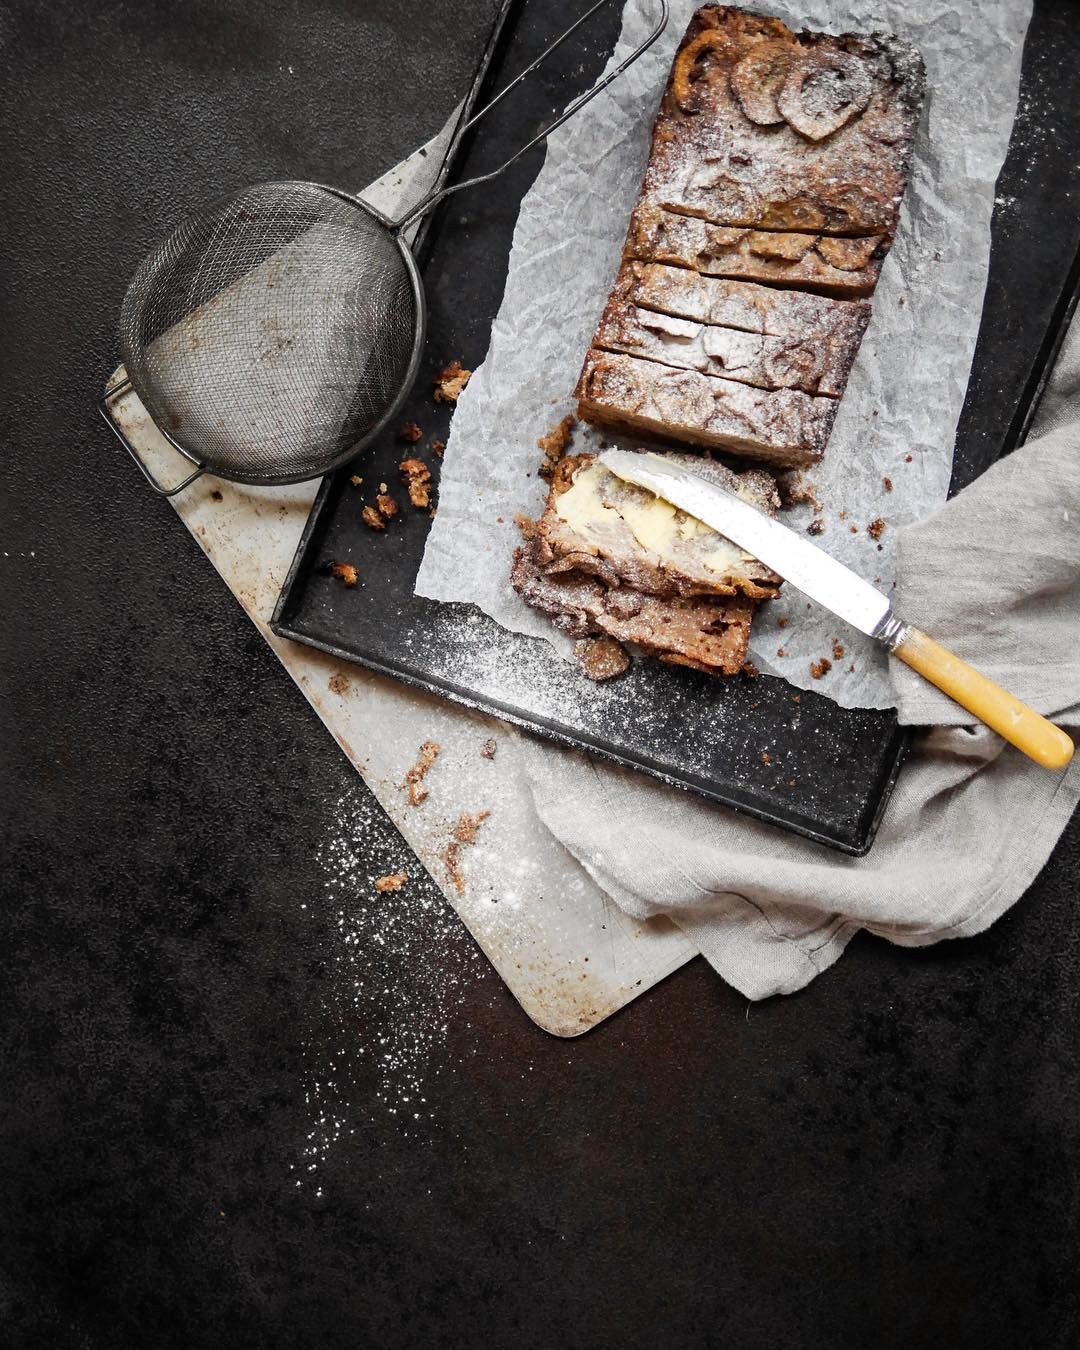 fresh baked banana bread on tray with knife and sieve